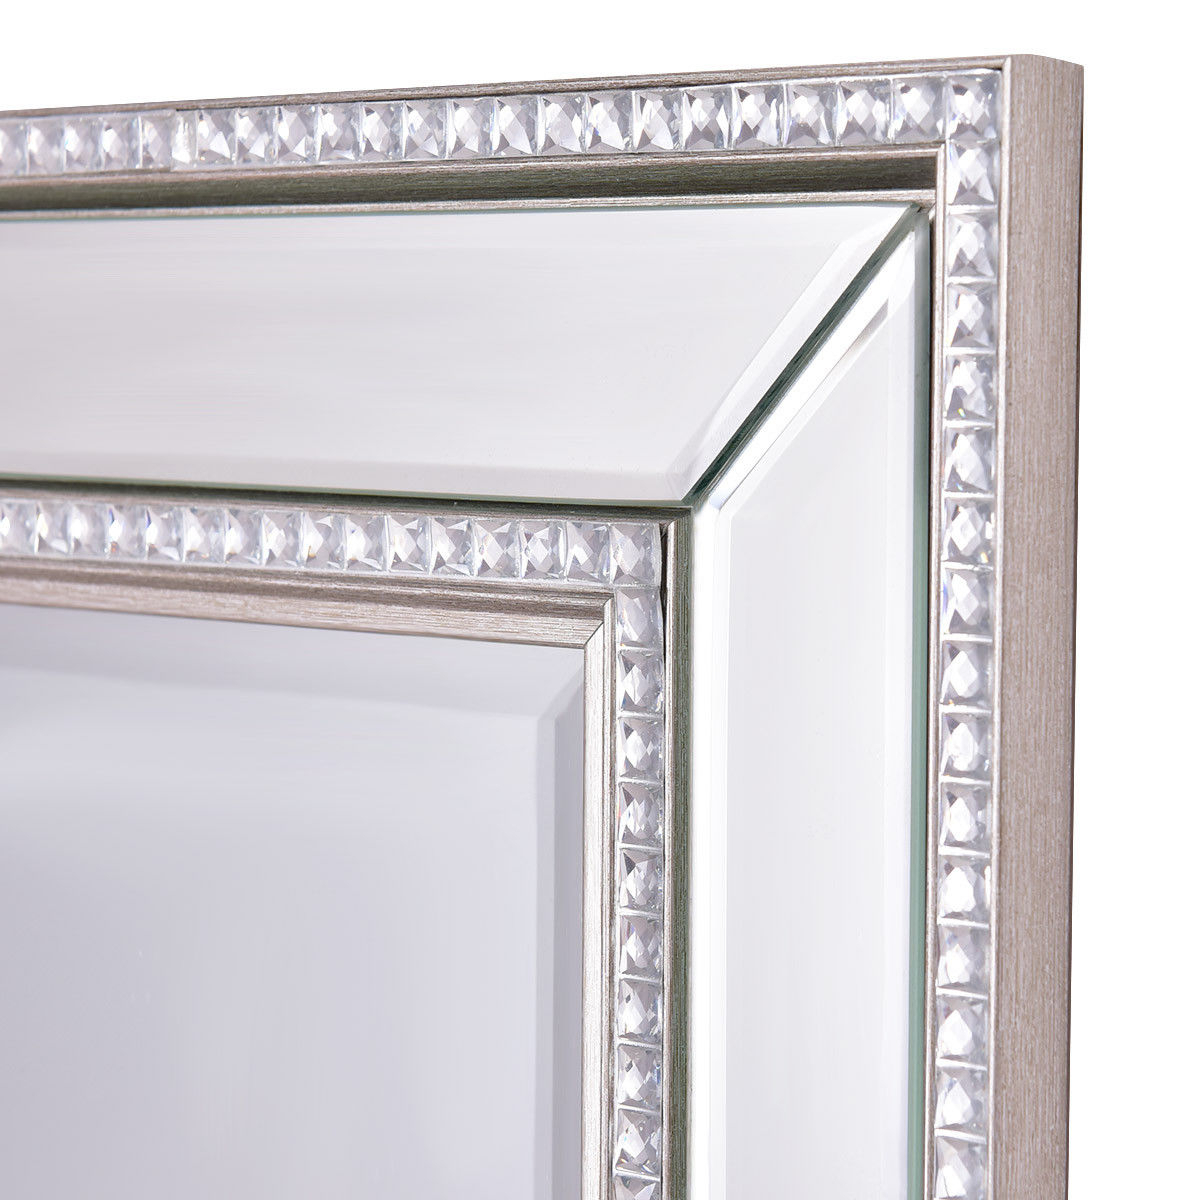 Trendy 24 X 36 Wall Mirrors With Regard To Costway 24'' X 36'' Rectangular Wall Mounted Wooden Frame Vanity Mirror  Glass Bathroom (View 18 of 20)